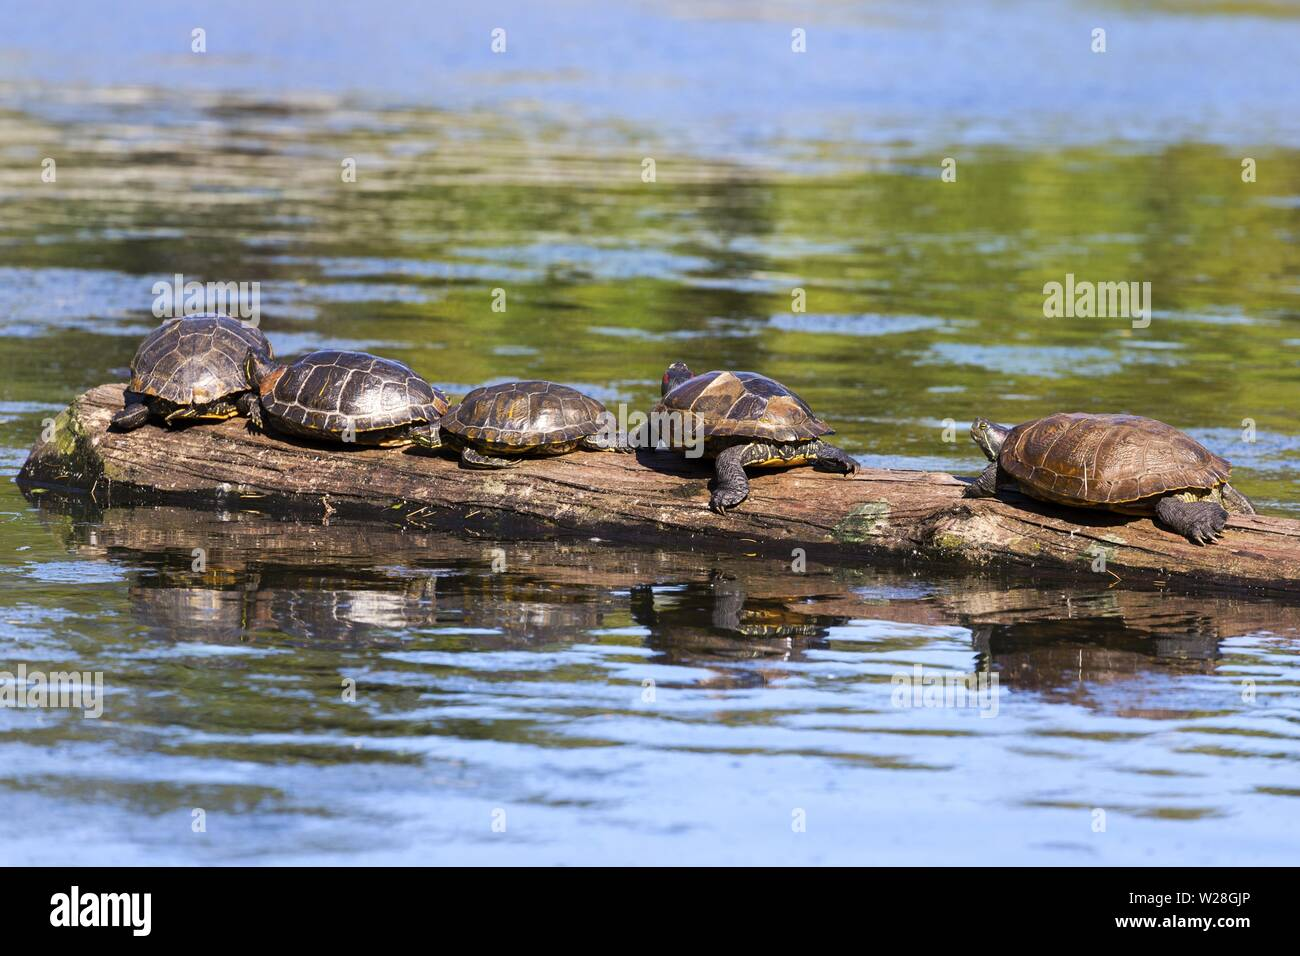 Group of Turtles resting on Tree log in calm water of Goodacre Lake. Beacon Hill Park, Vancouver Island Victoria BC Canada - Stock Image